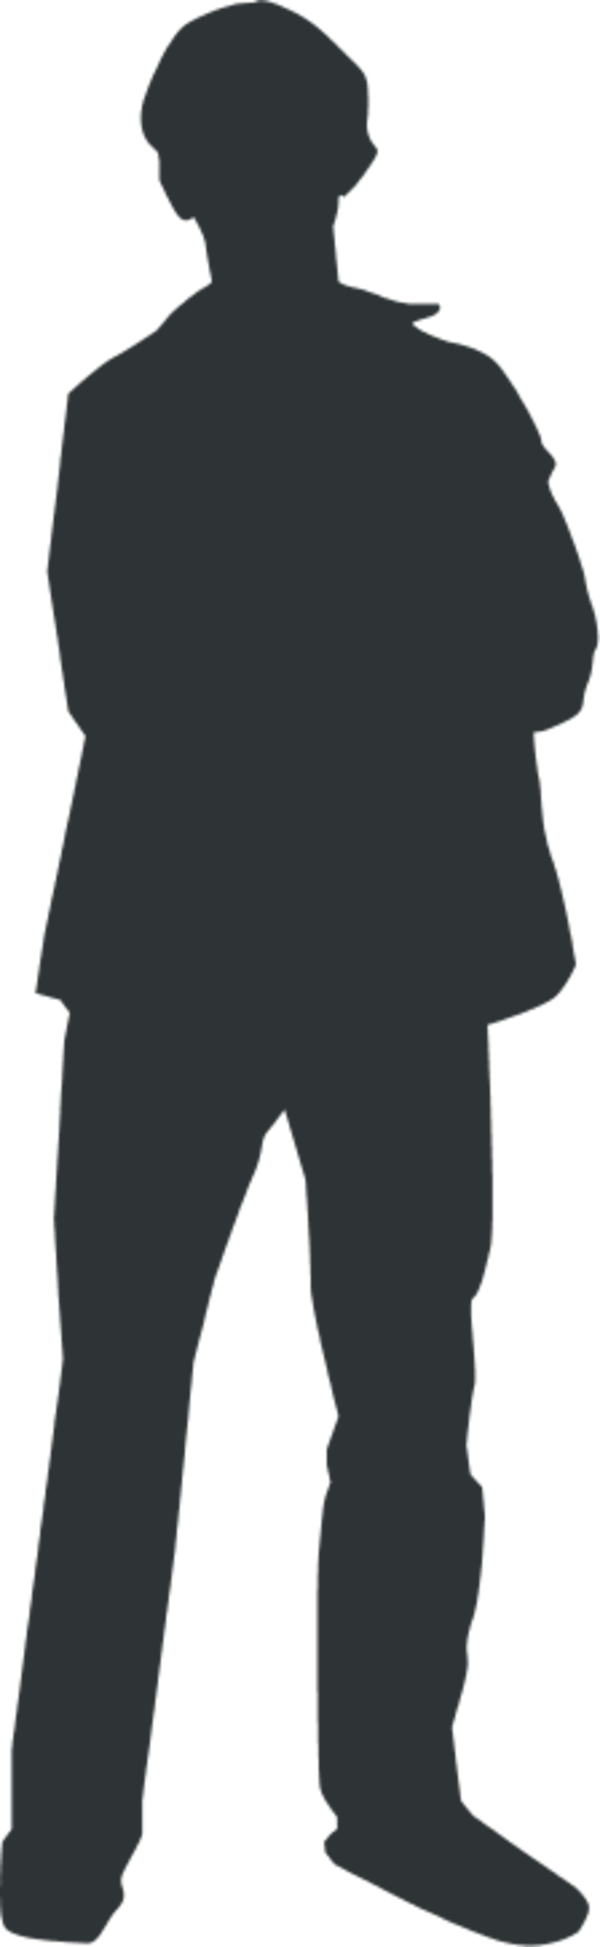 People shadow clipart small.